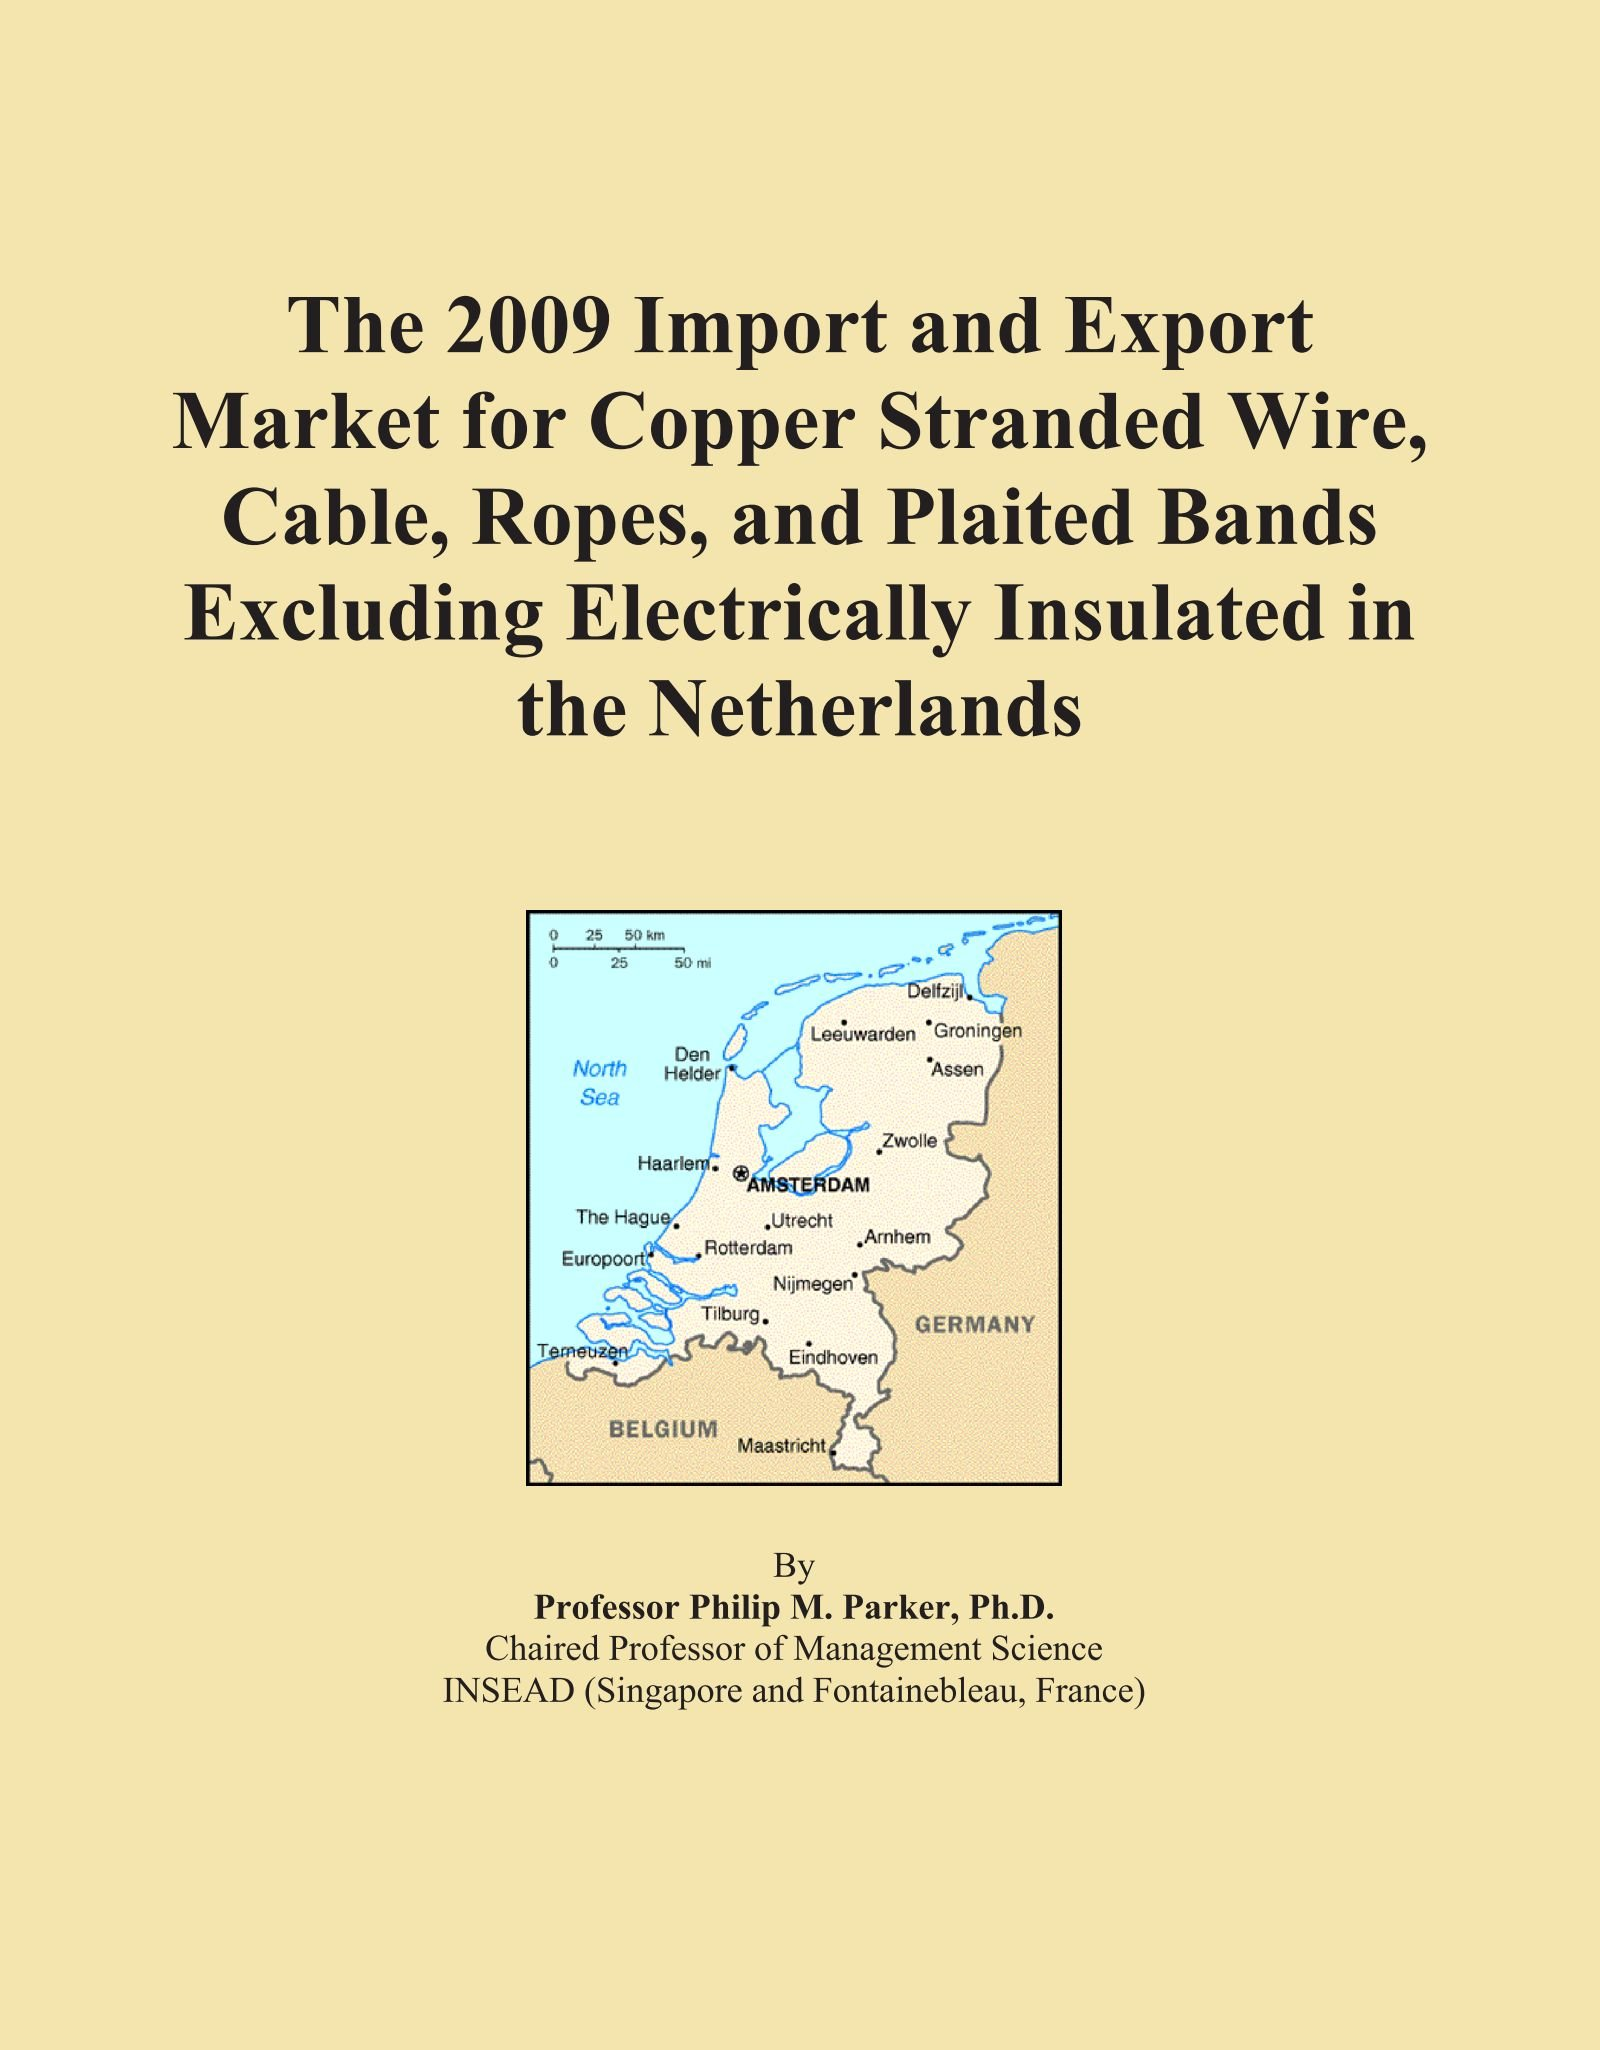 The 2009 Import and Export Market for Copper Stranded Wire, Cable, Ropes, and Plaited Bands Excluding Electrically Insulated in the Netherlands pdf